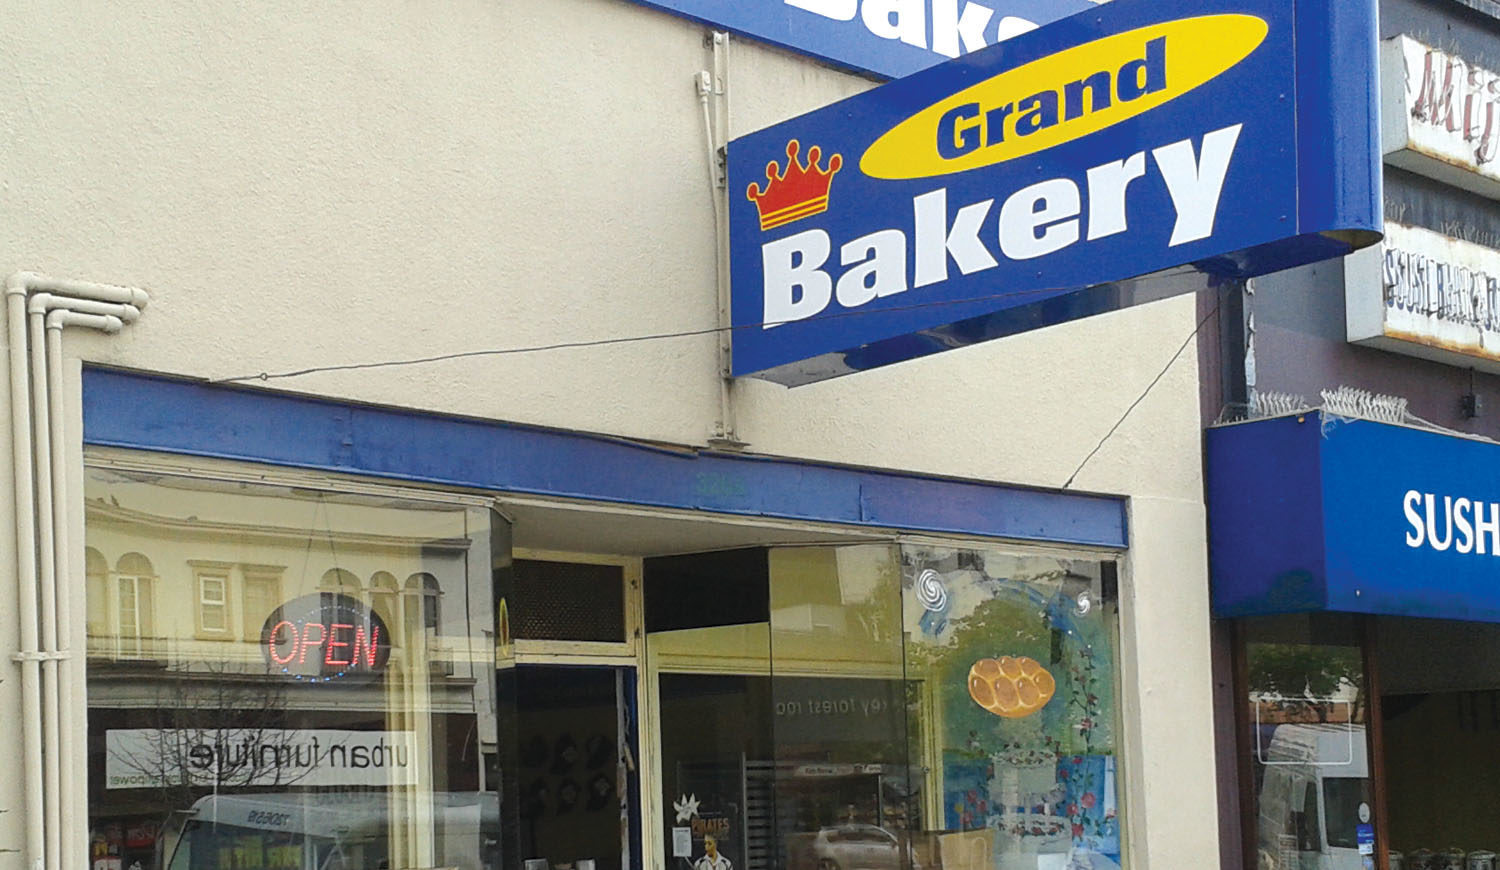 Grand Bakery closed in December but a new buyer plans to continue making signature products. (Courtesy/Bob Jaffe)